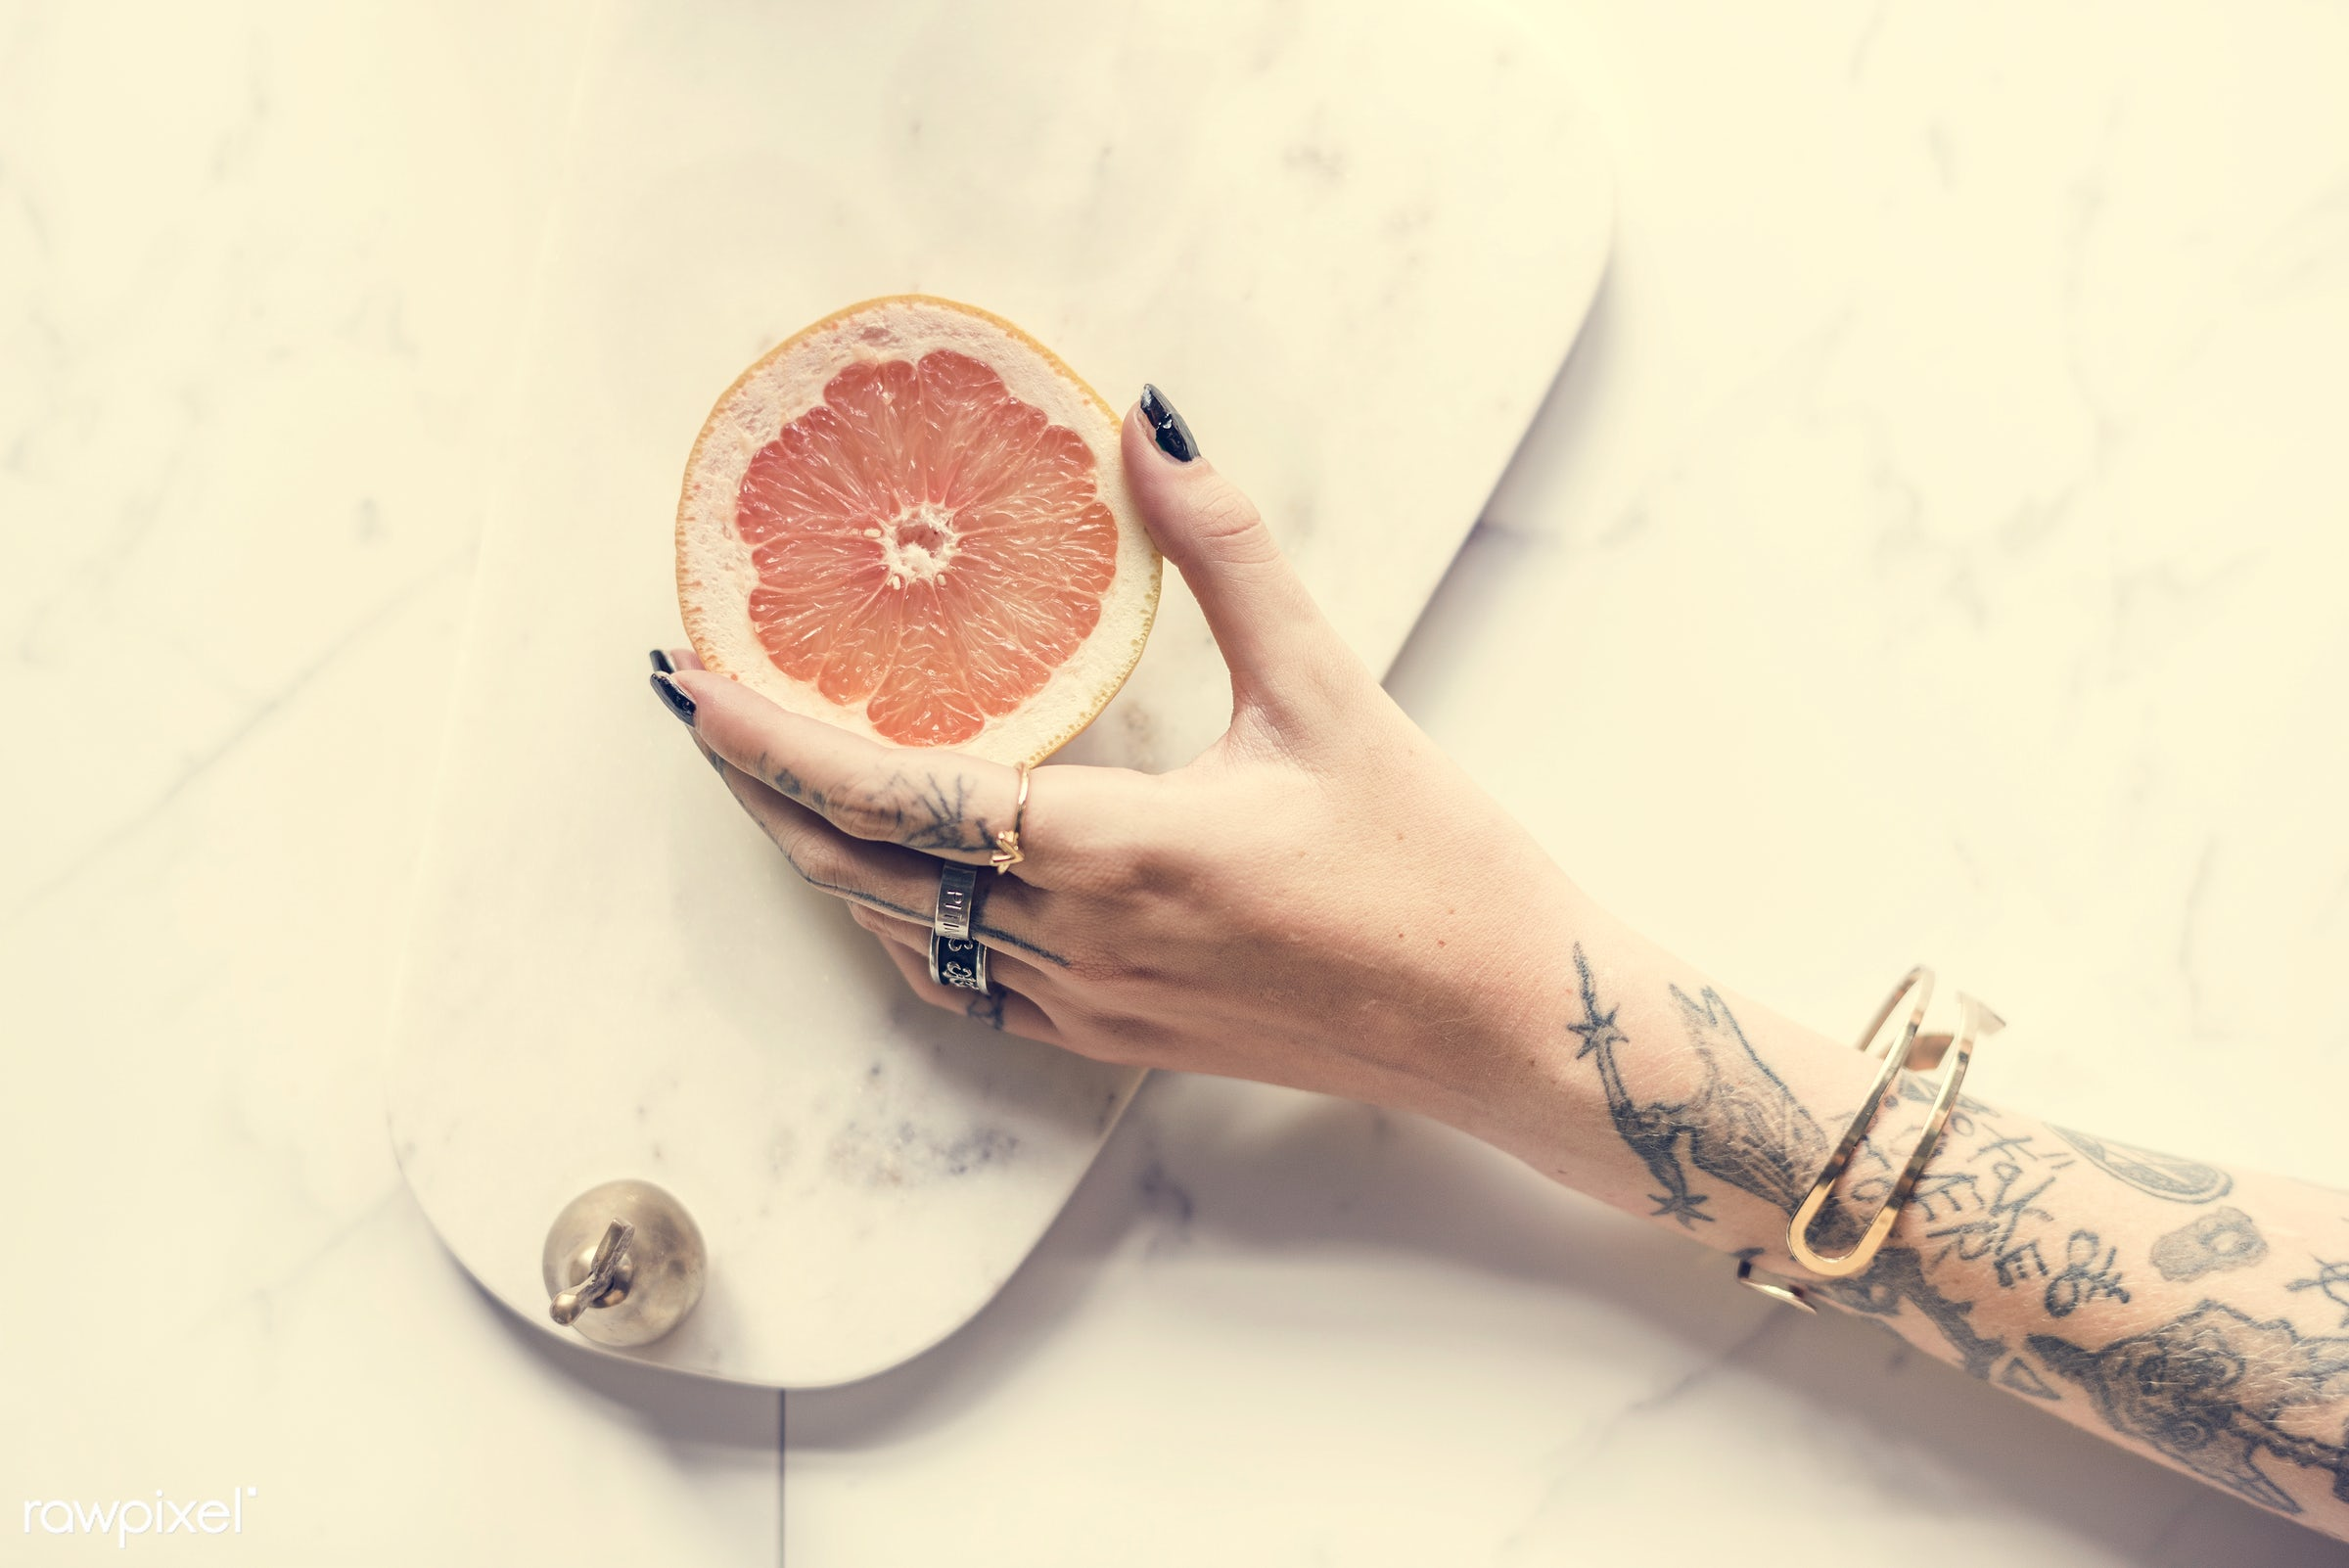 grab, getting, marble, person, relax, people, hand, life, style, woman, grabbing, lifestyle, tattoo, passion, orange, held,...